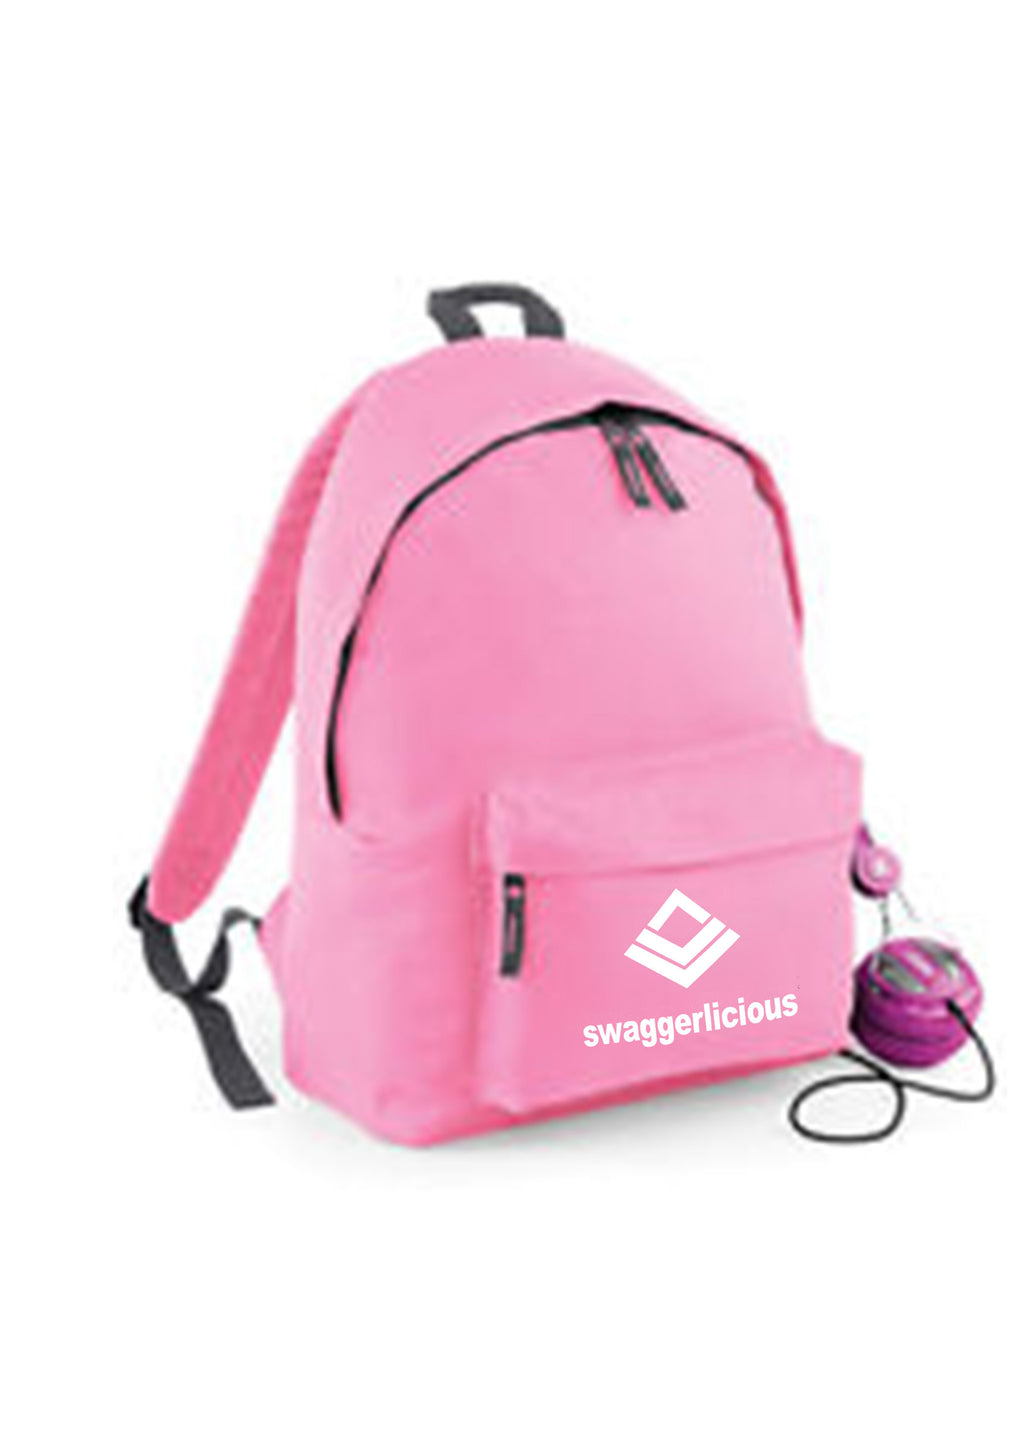 FUCHSIA SWAGGERLICIOUS BACKPACK - swaggerlicious-clothing.com